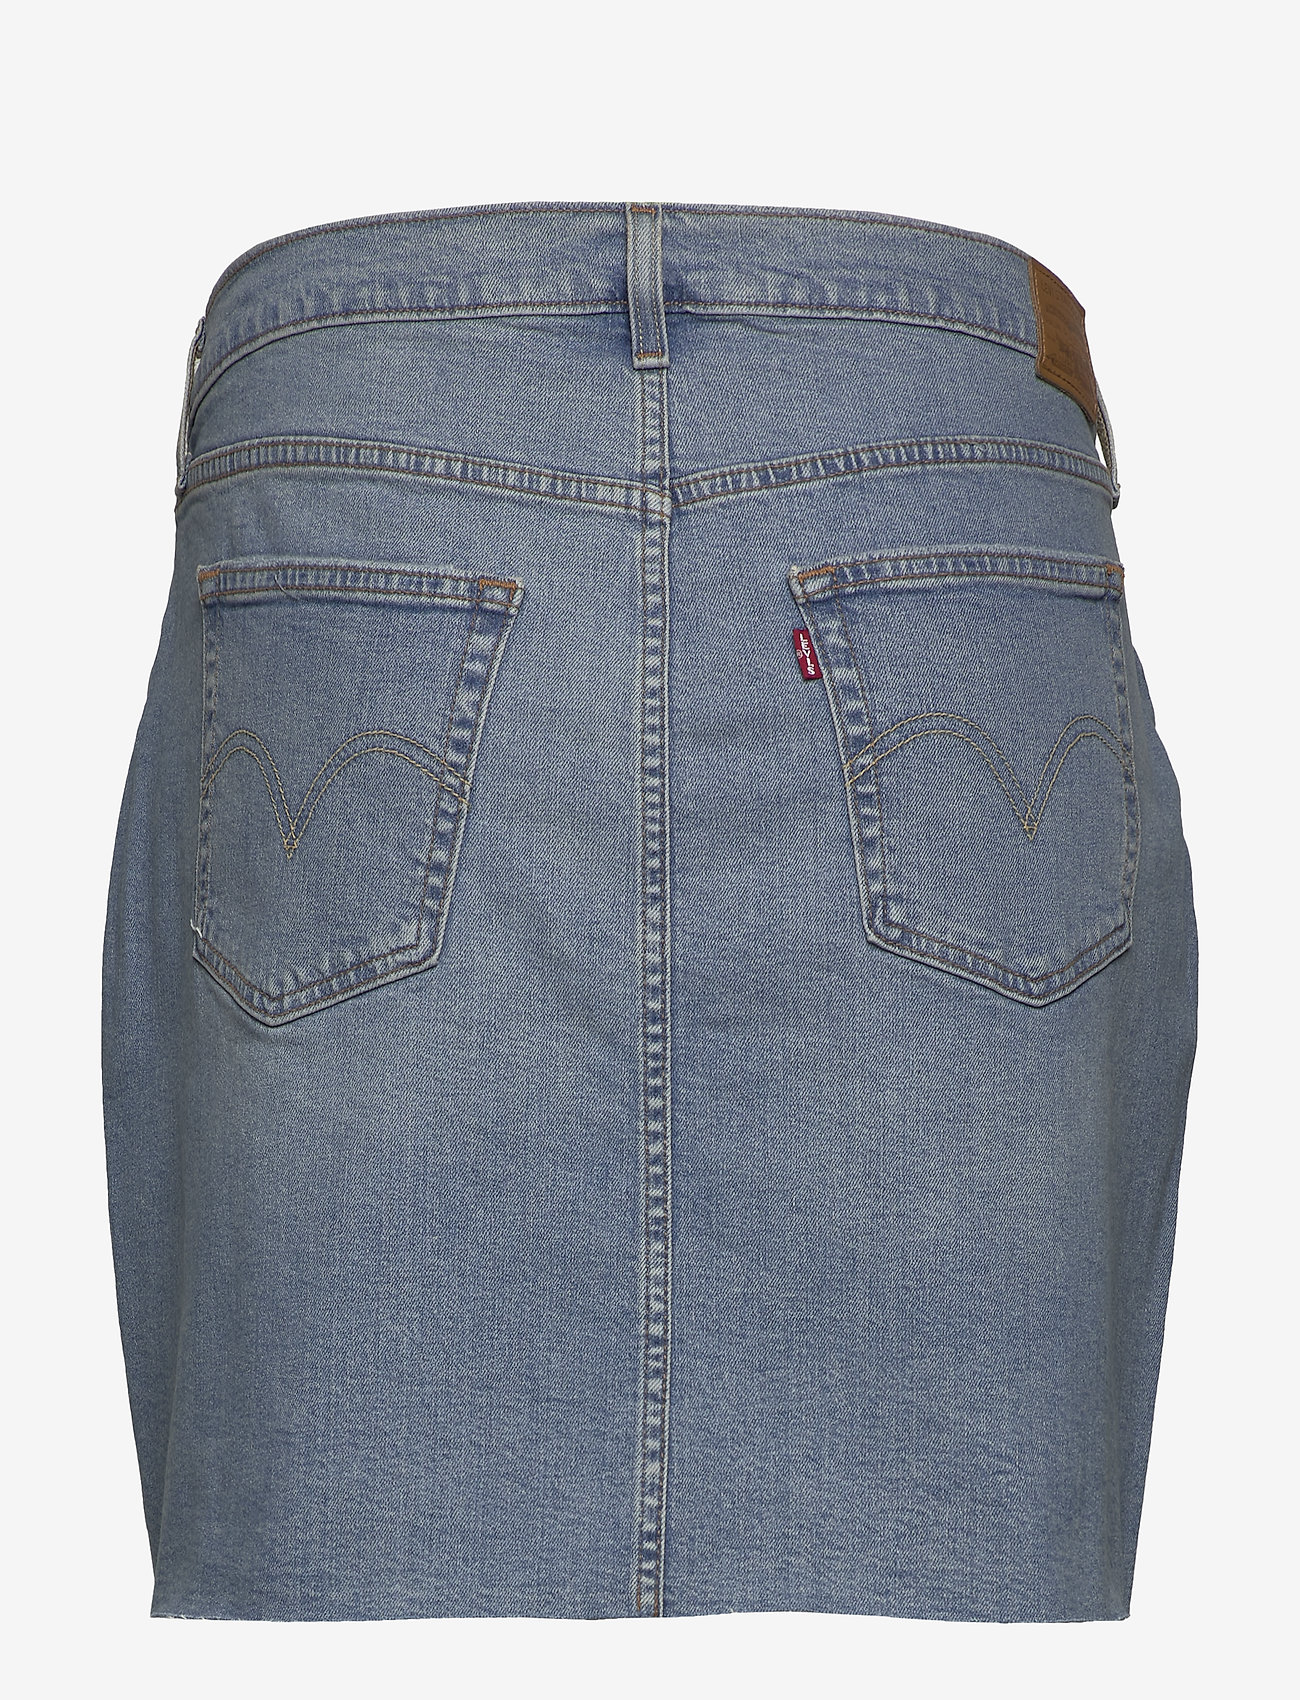 Levi's Plus Size - PL DECONSTRUCTED SKIRT GATEWAY - denim skirts - light indigo - worn in - 1